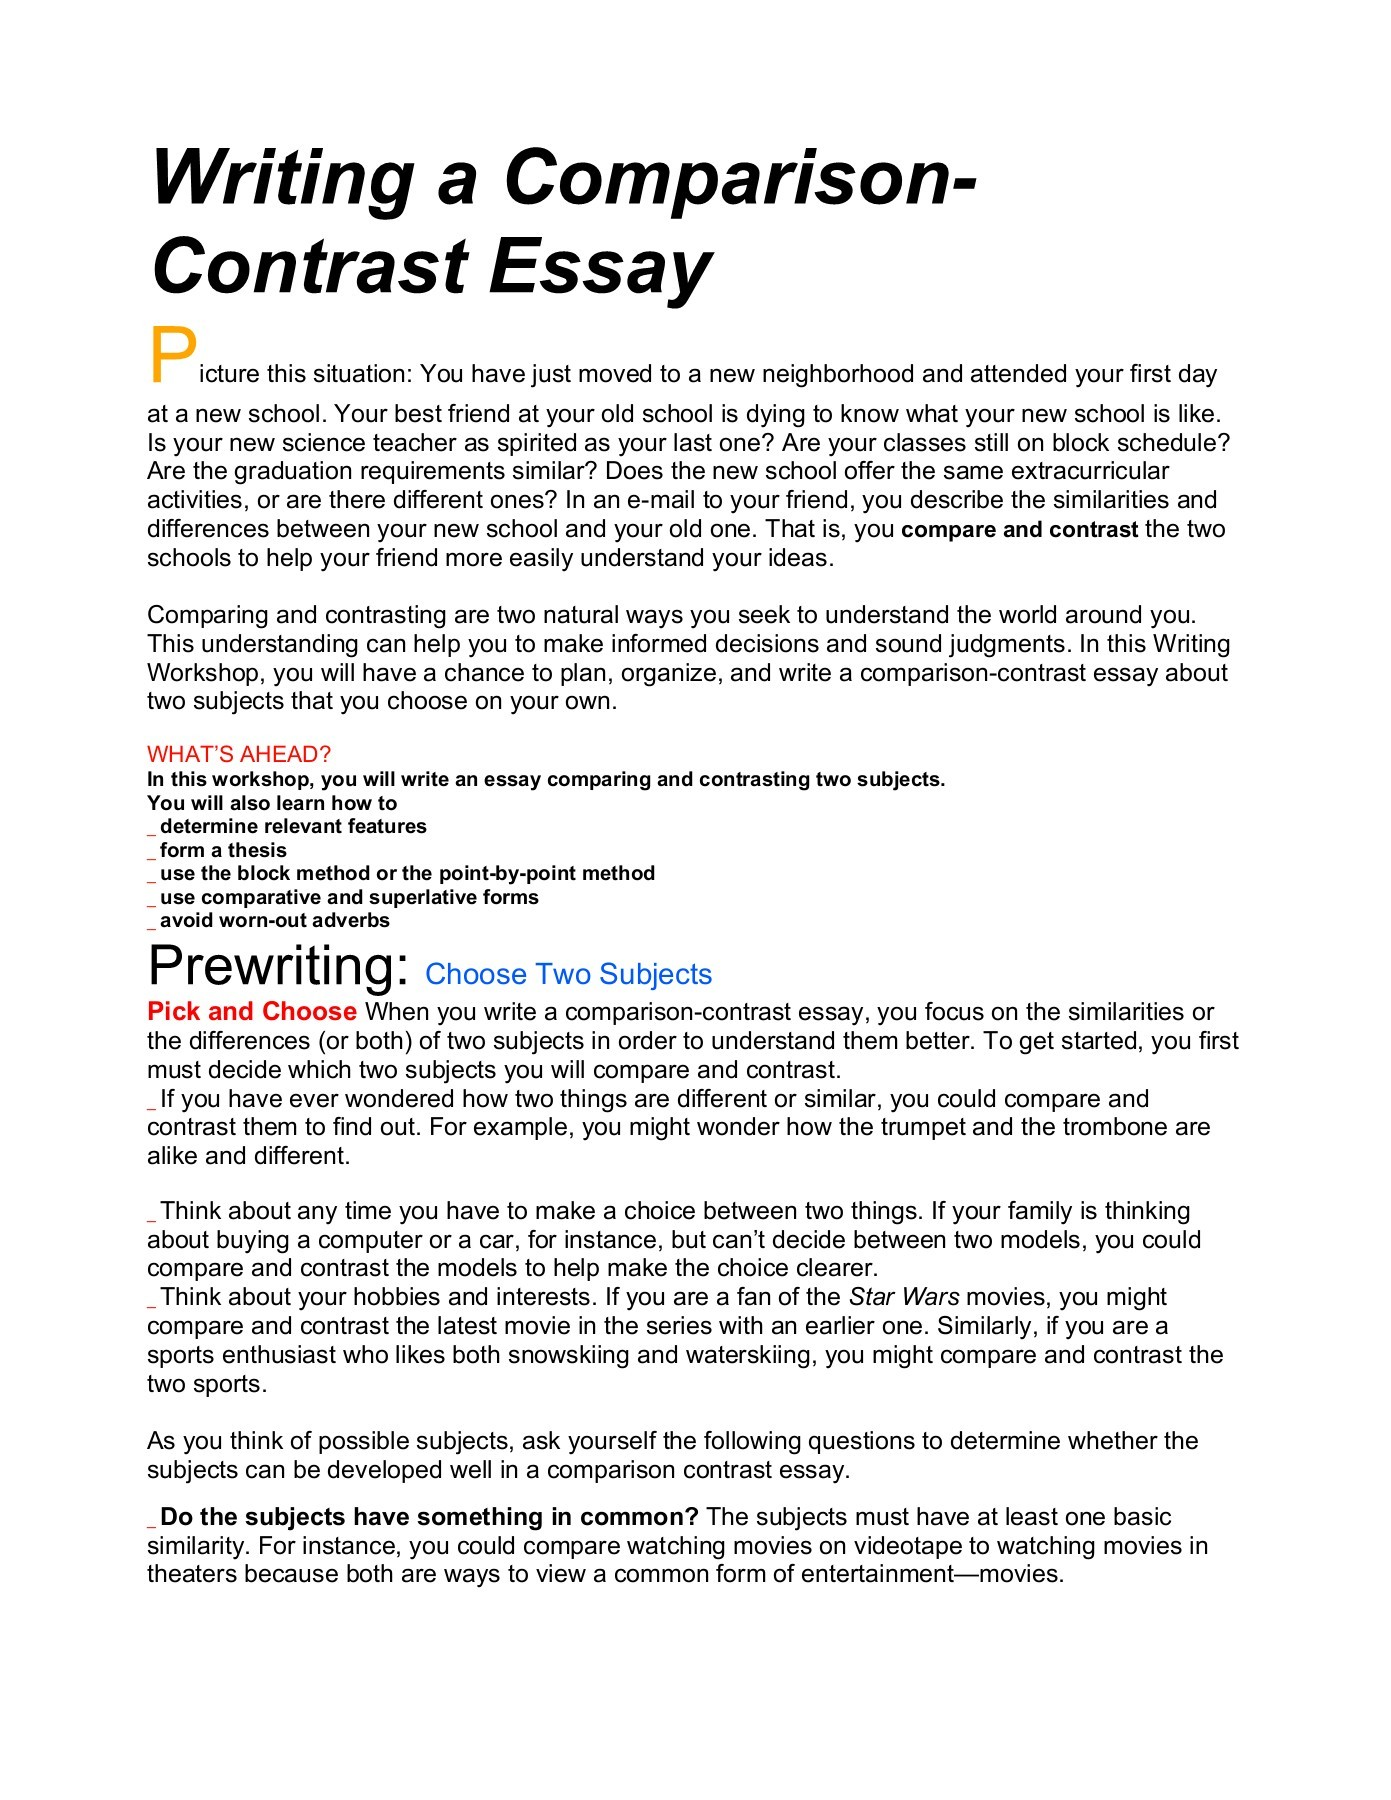 012 How To Conclude Compare And Contrast Essay Example Fantastic A Start Writing Comparison Write Begin Full